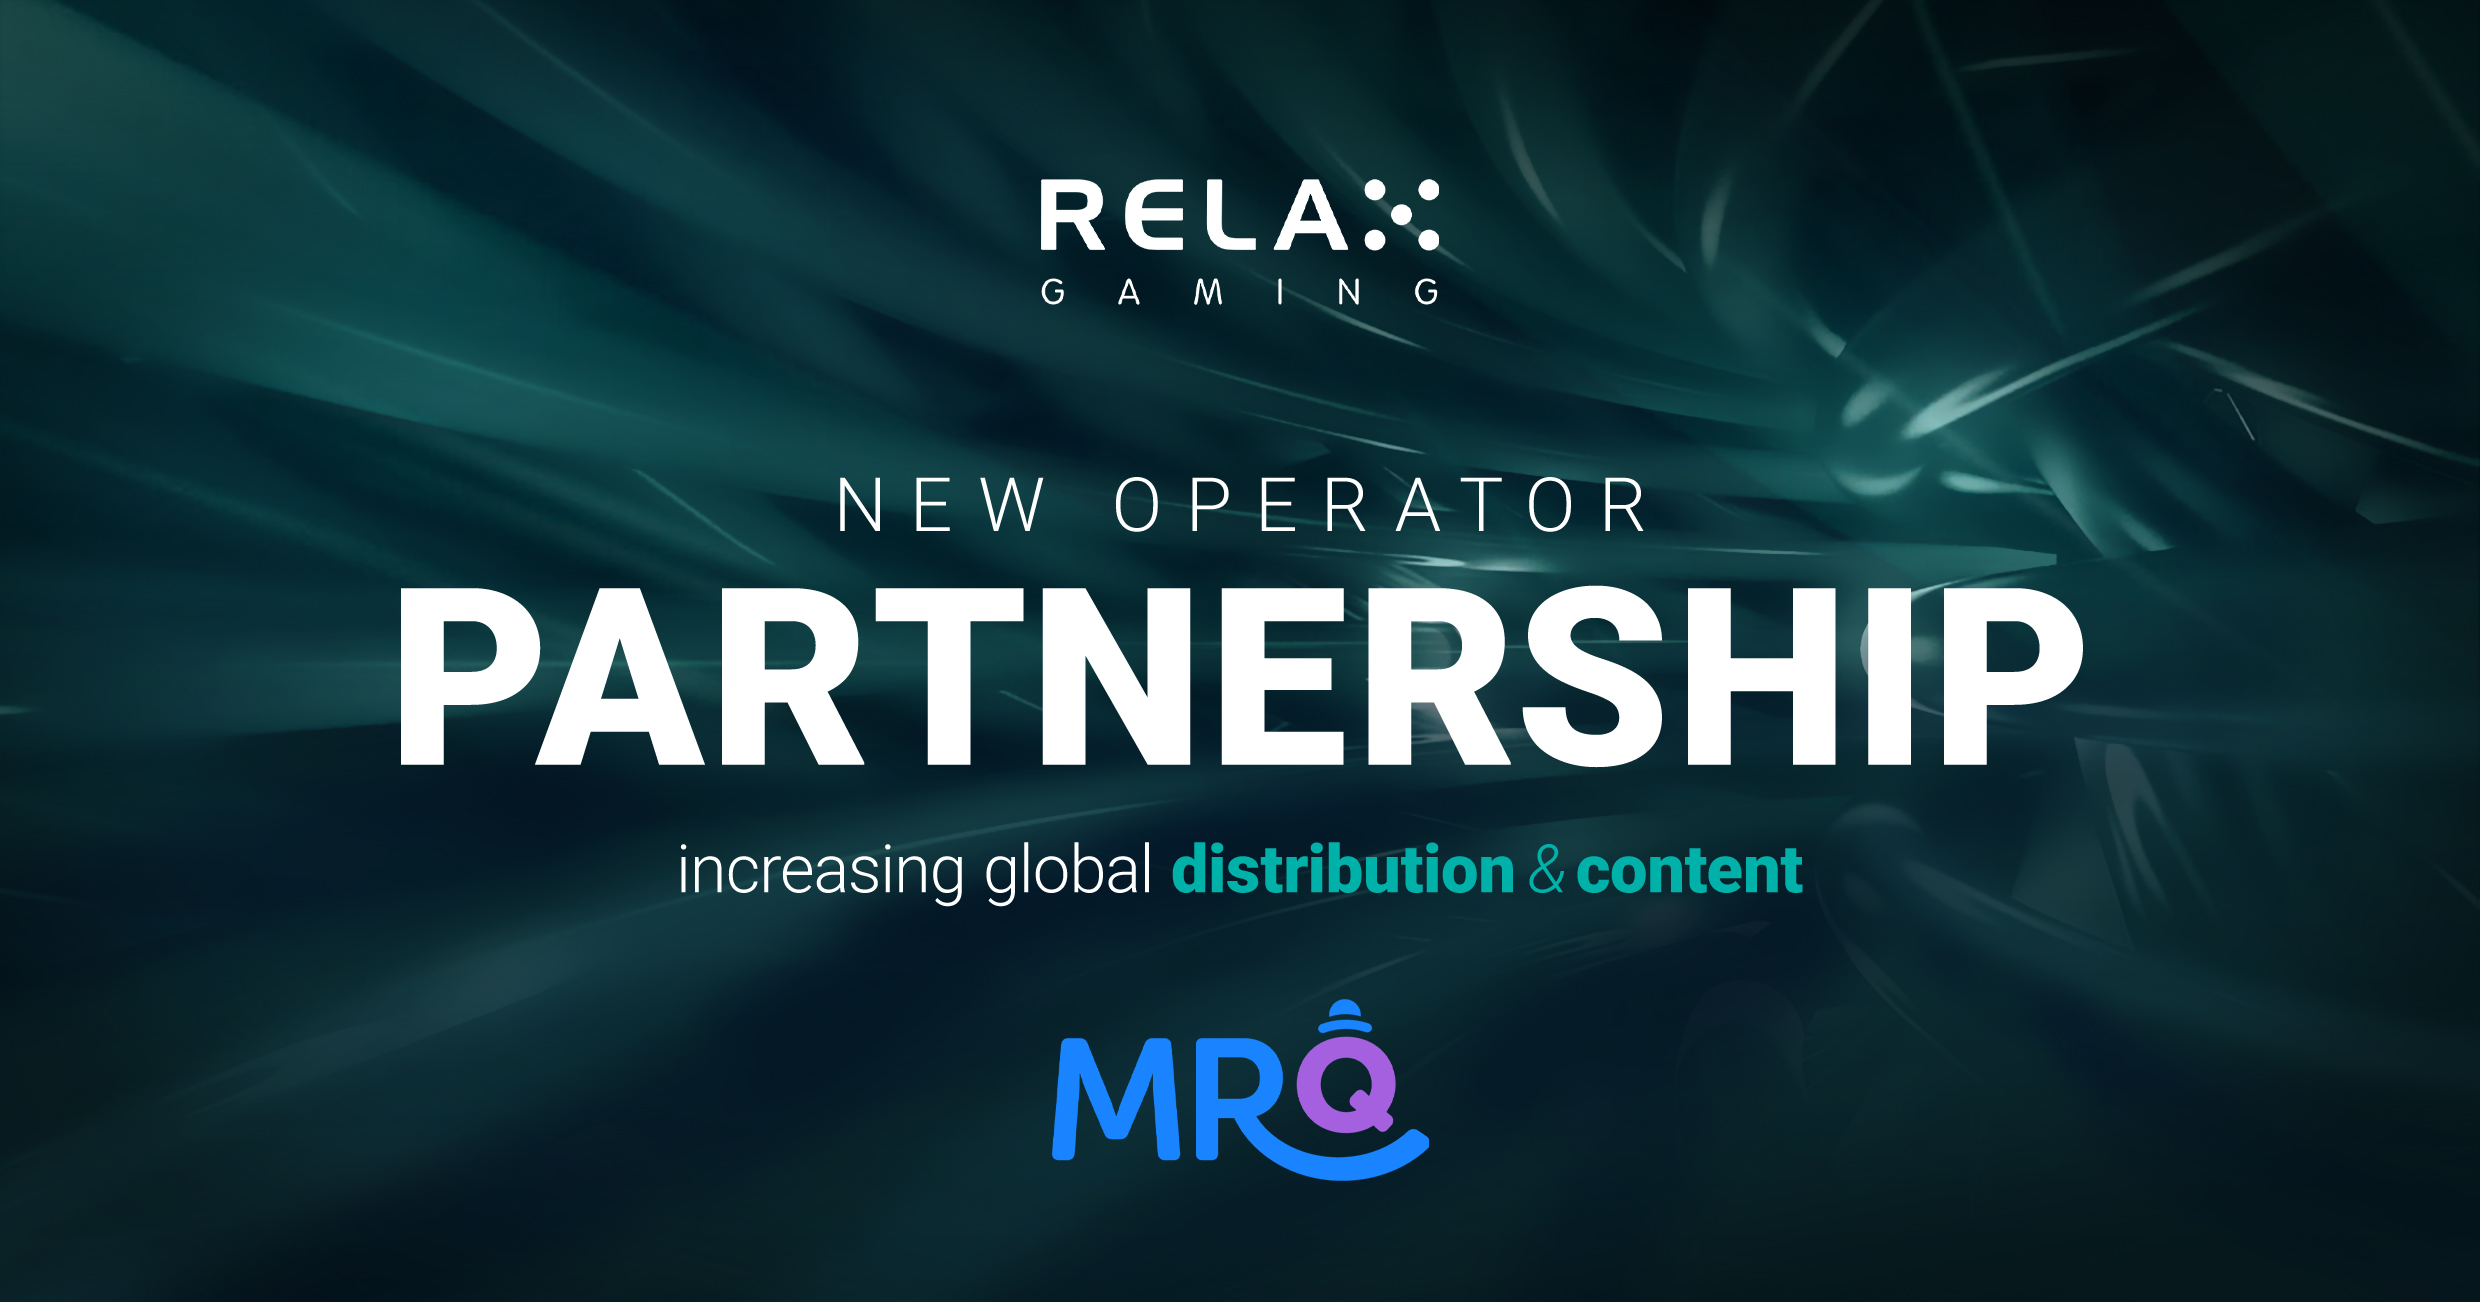 Relax Gaming expands in UK with Lindar Media's MrQ.com